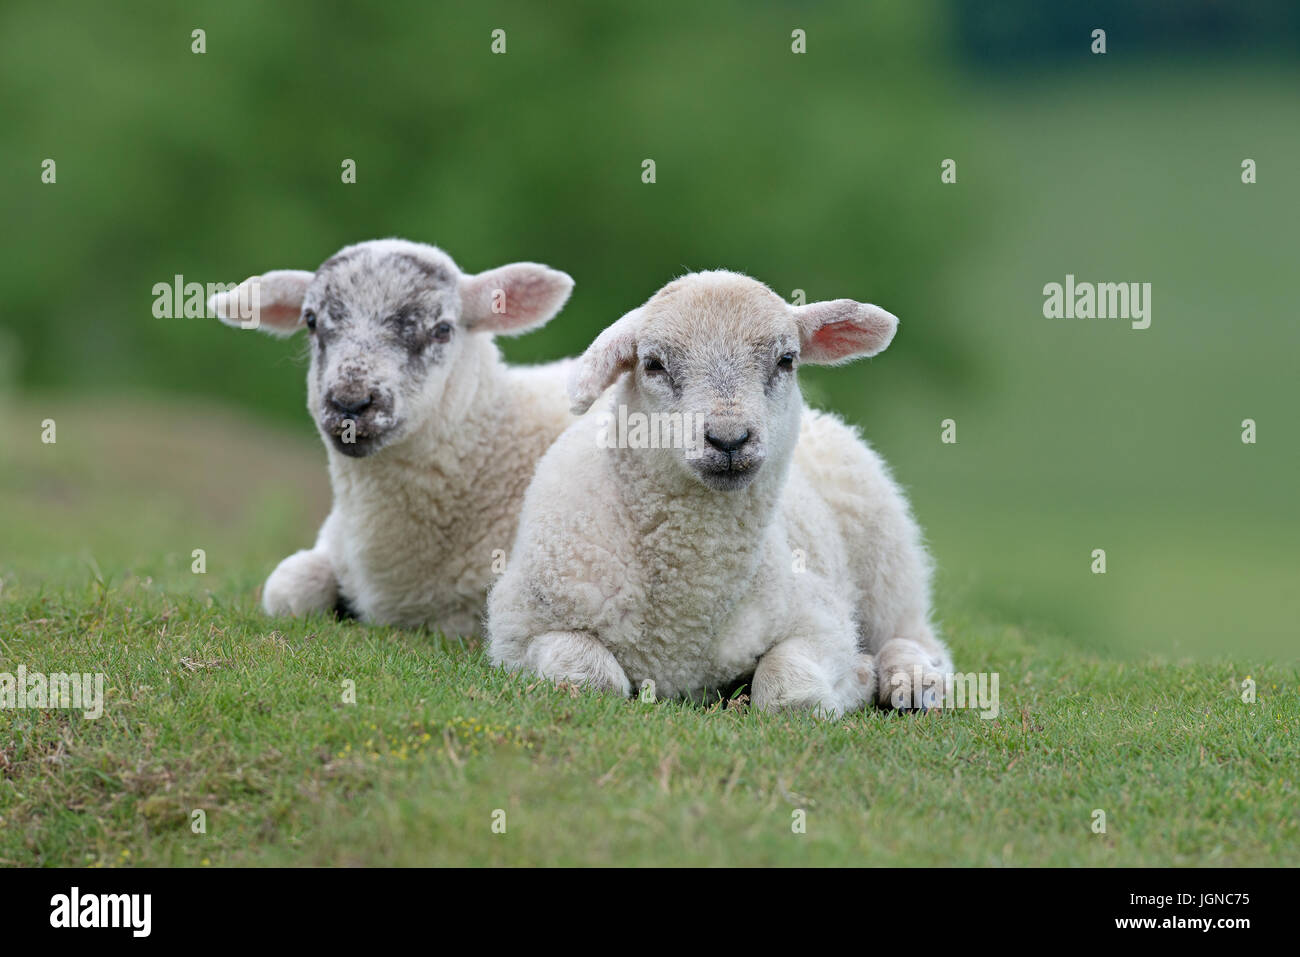 Pair of Lambs-Ovis aries on the Yorkshire Moors, Yorkshire, England, Uk. - Stock Image